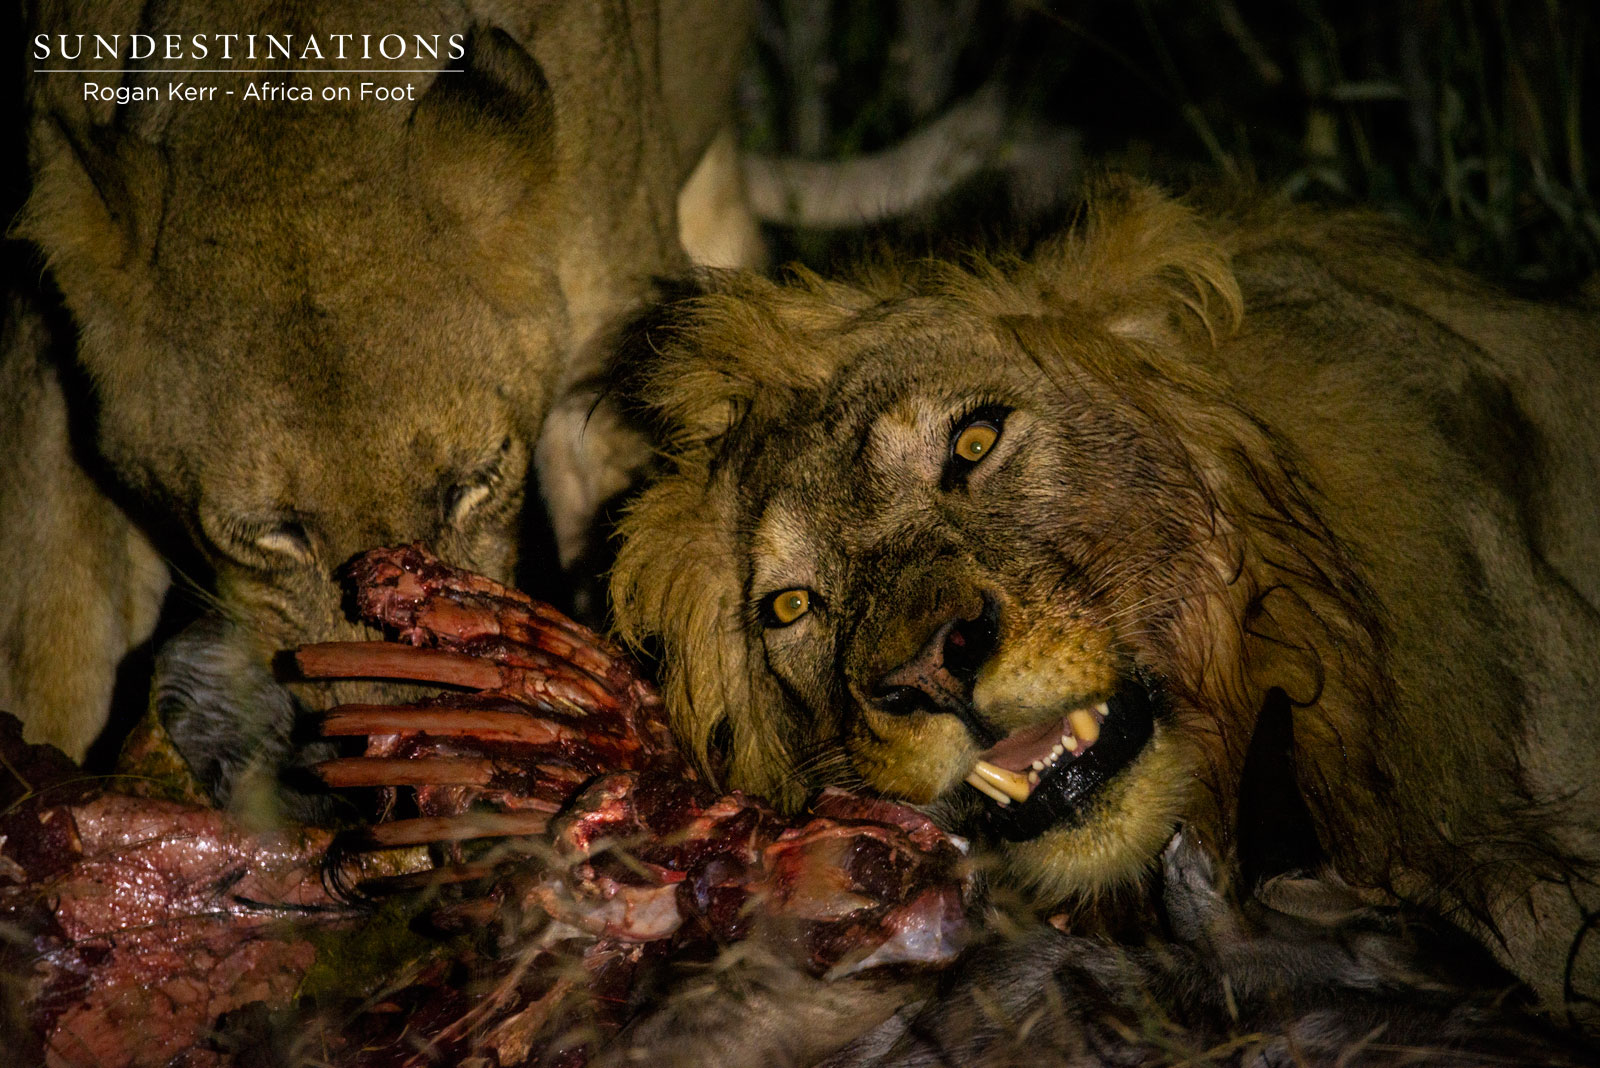 Week in Pics : Lions in the Limelight, Birds in the Daylight